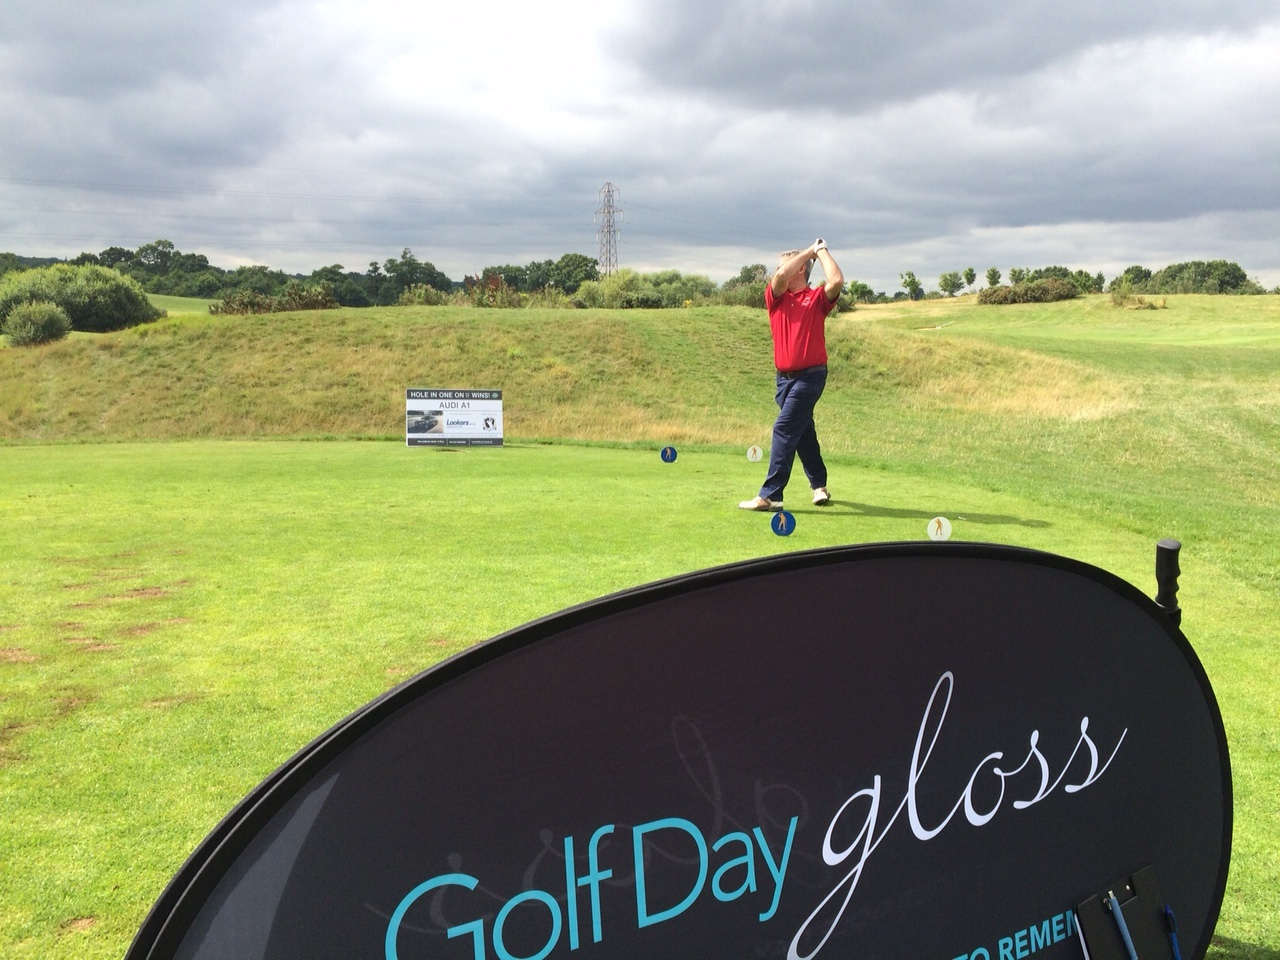 Playing to WIN the Glossy Audi A1 kindly sponsored by Lookers Audi part of Lookers Group